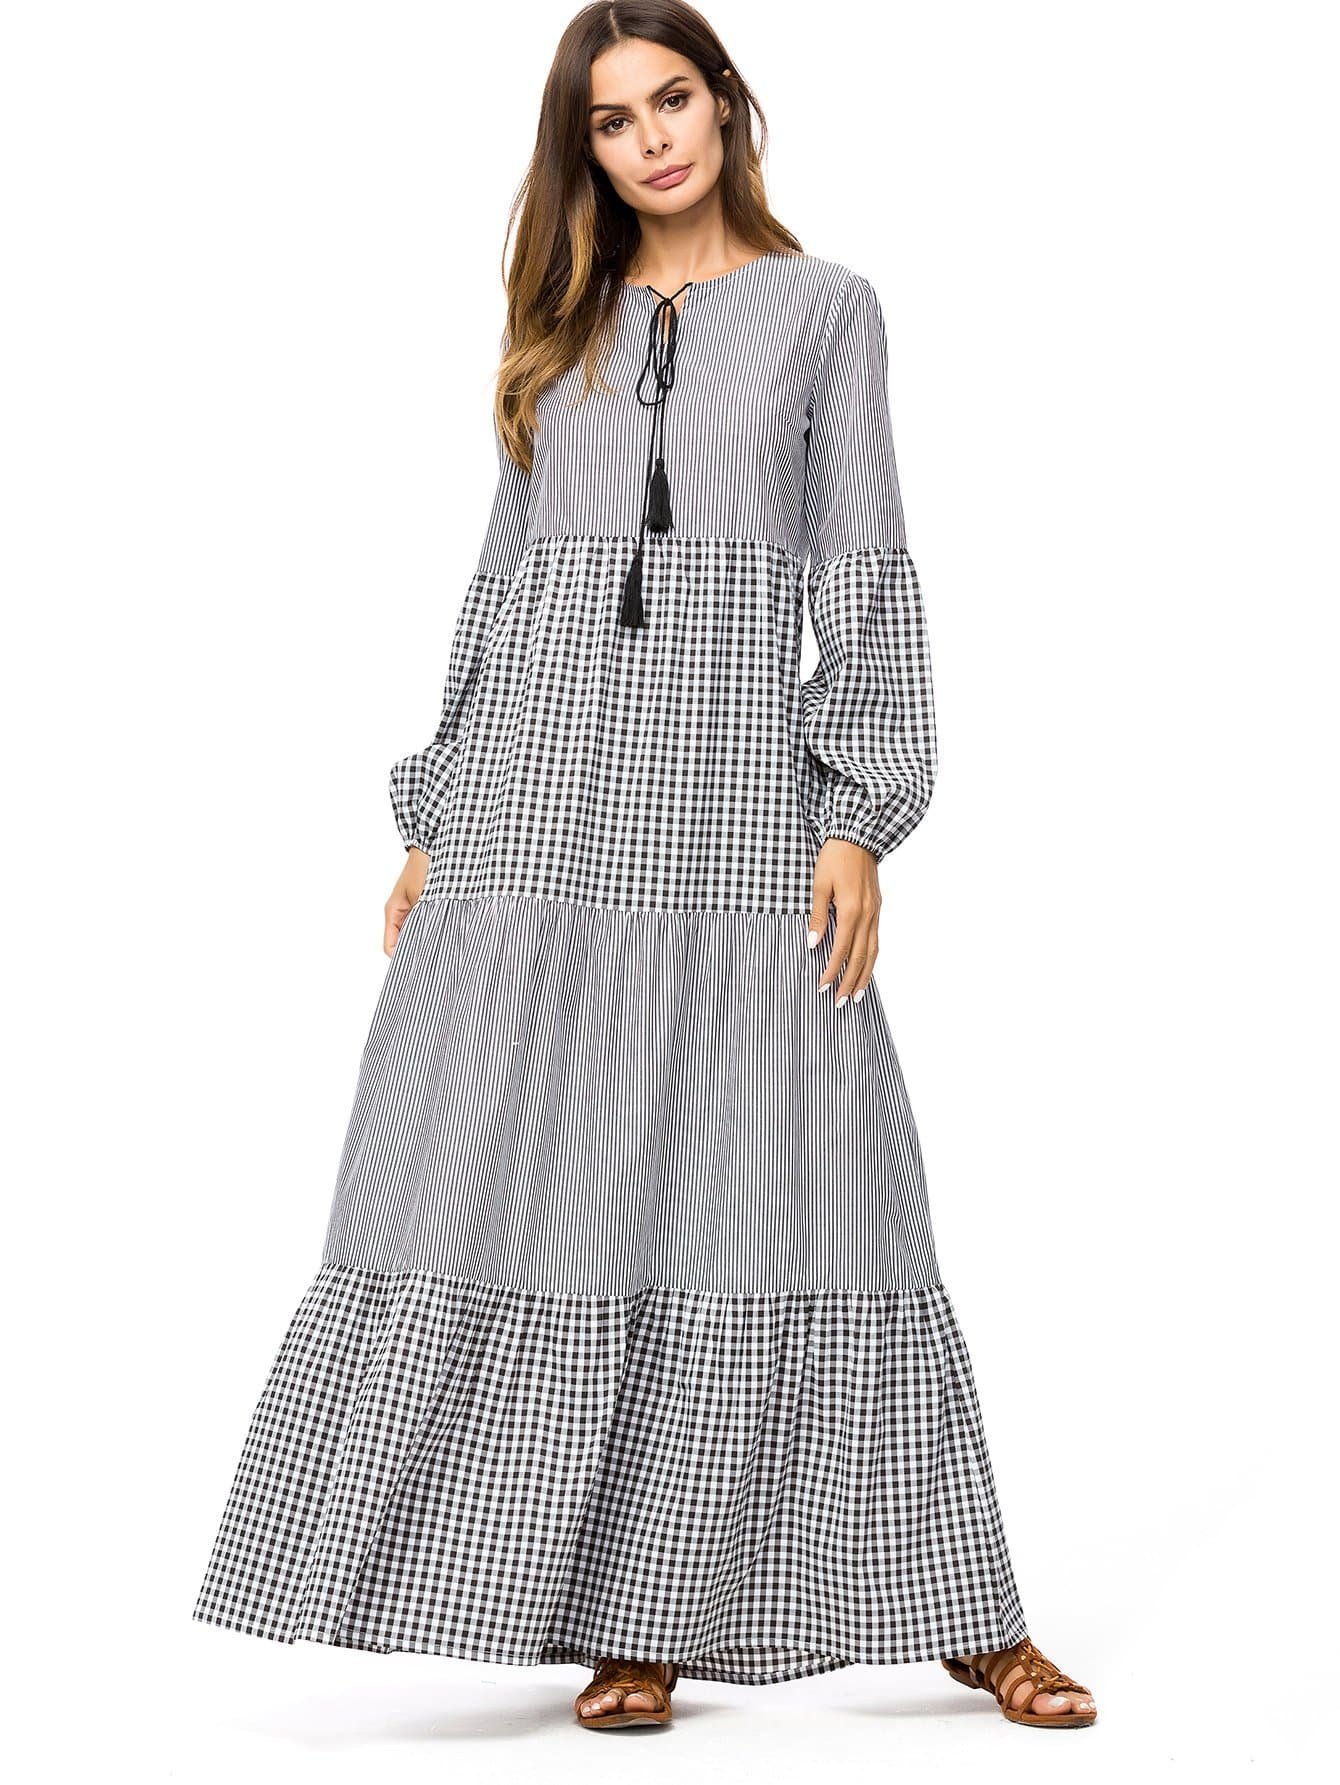 ee0095d0b8 Plaid Contrast Striped Longline Dress -SheIn(Sheinside)